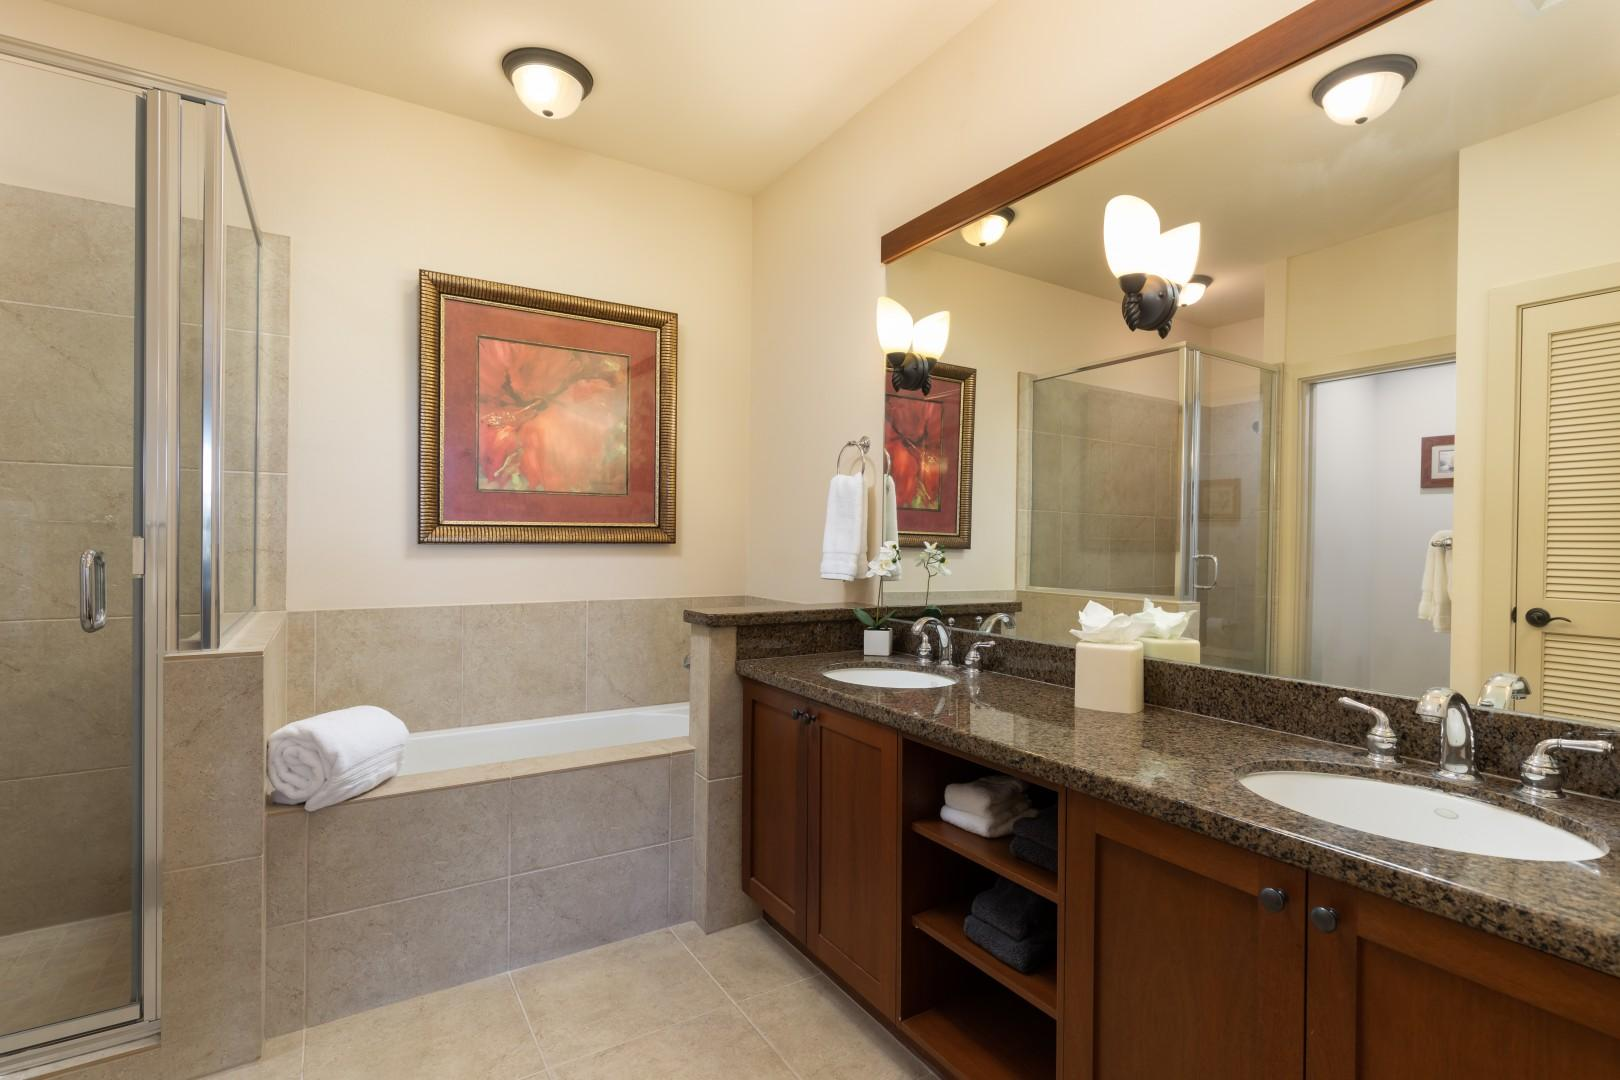 The master bathroom provides dual vanities and a great deal of space.